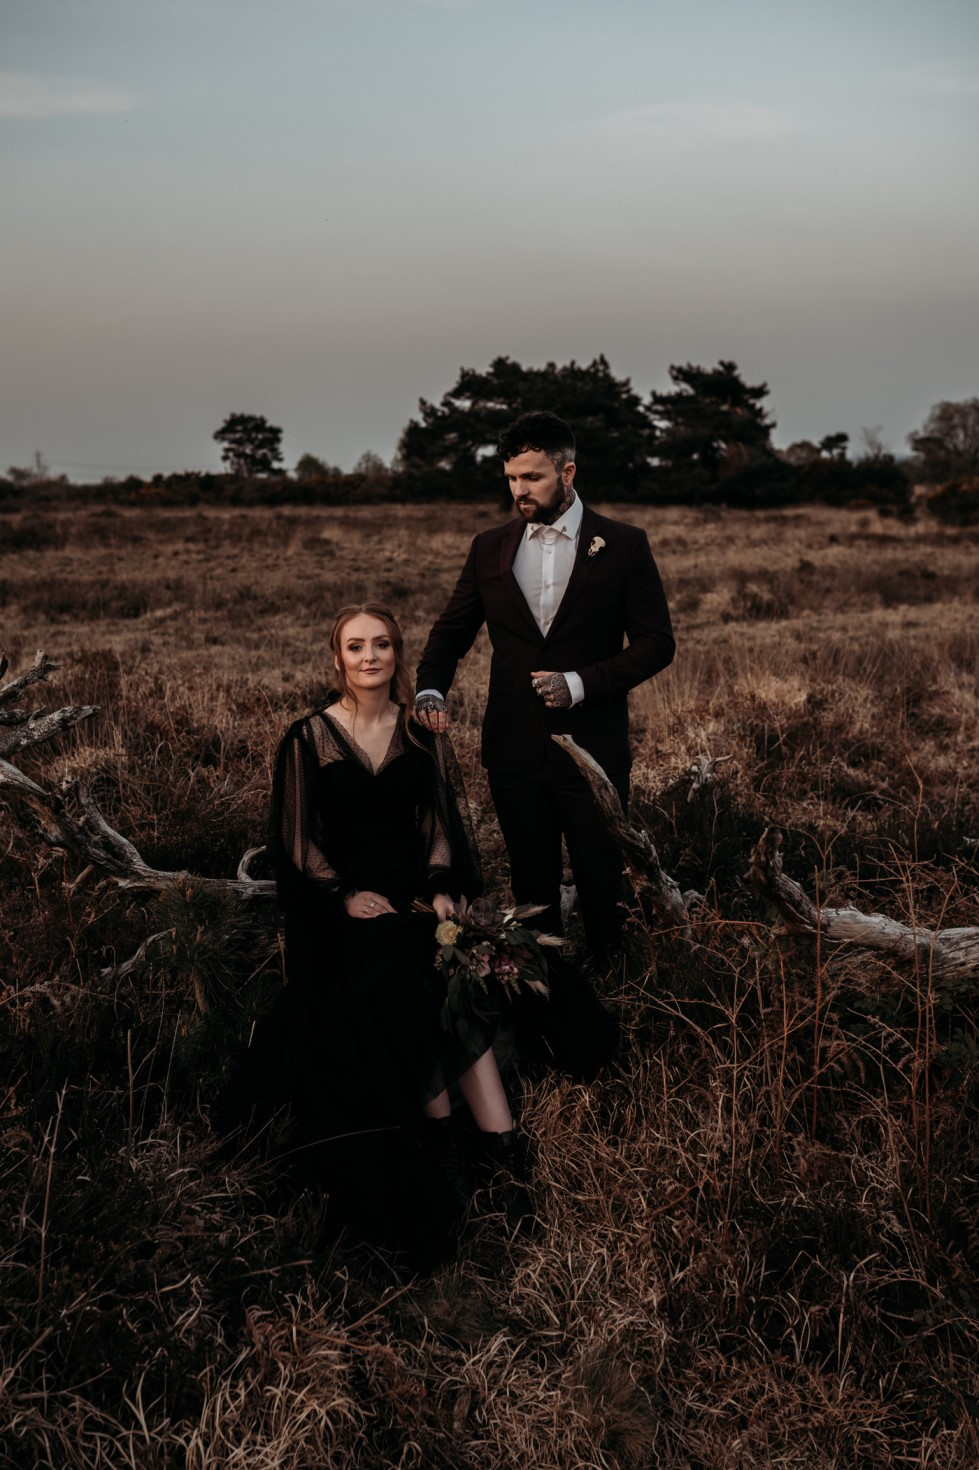 Finn And The Fox Photography-Moody Elopement Wedding- Unconventional Wedding-Edgy Wedding- Unique Wedding - Gothic wedding 3